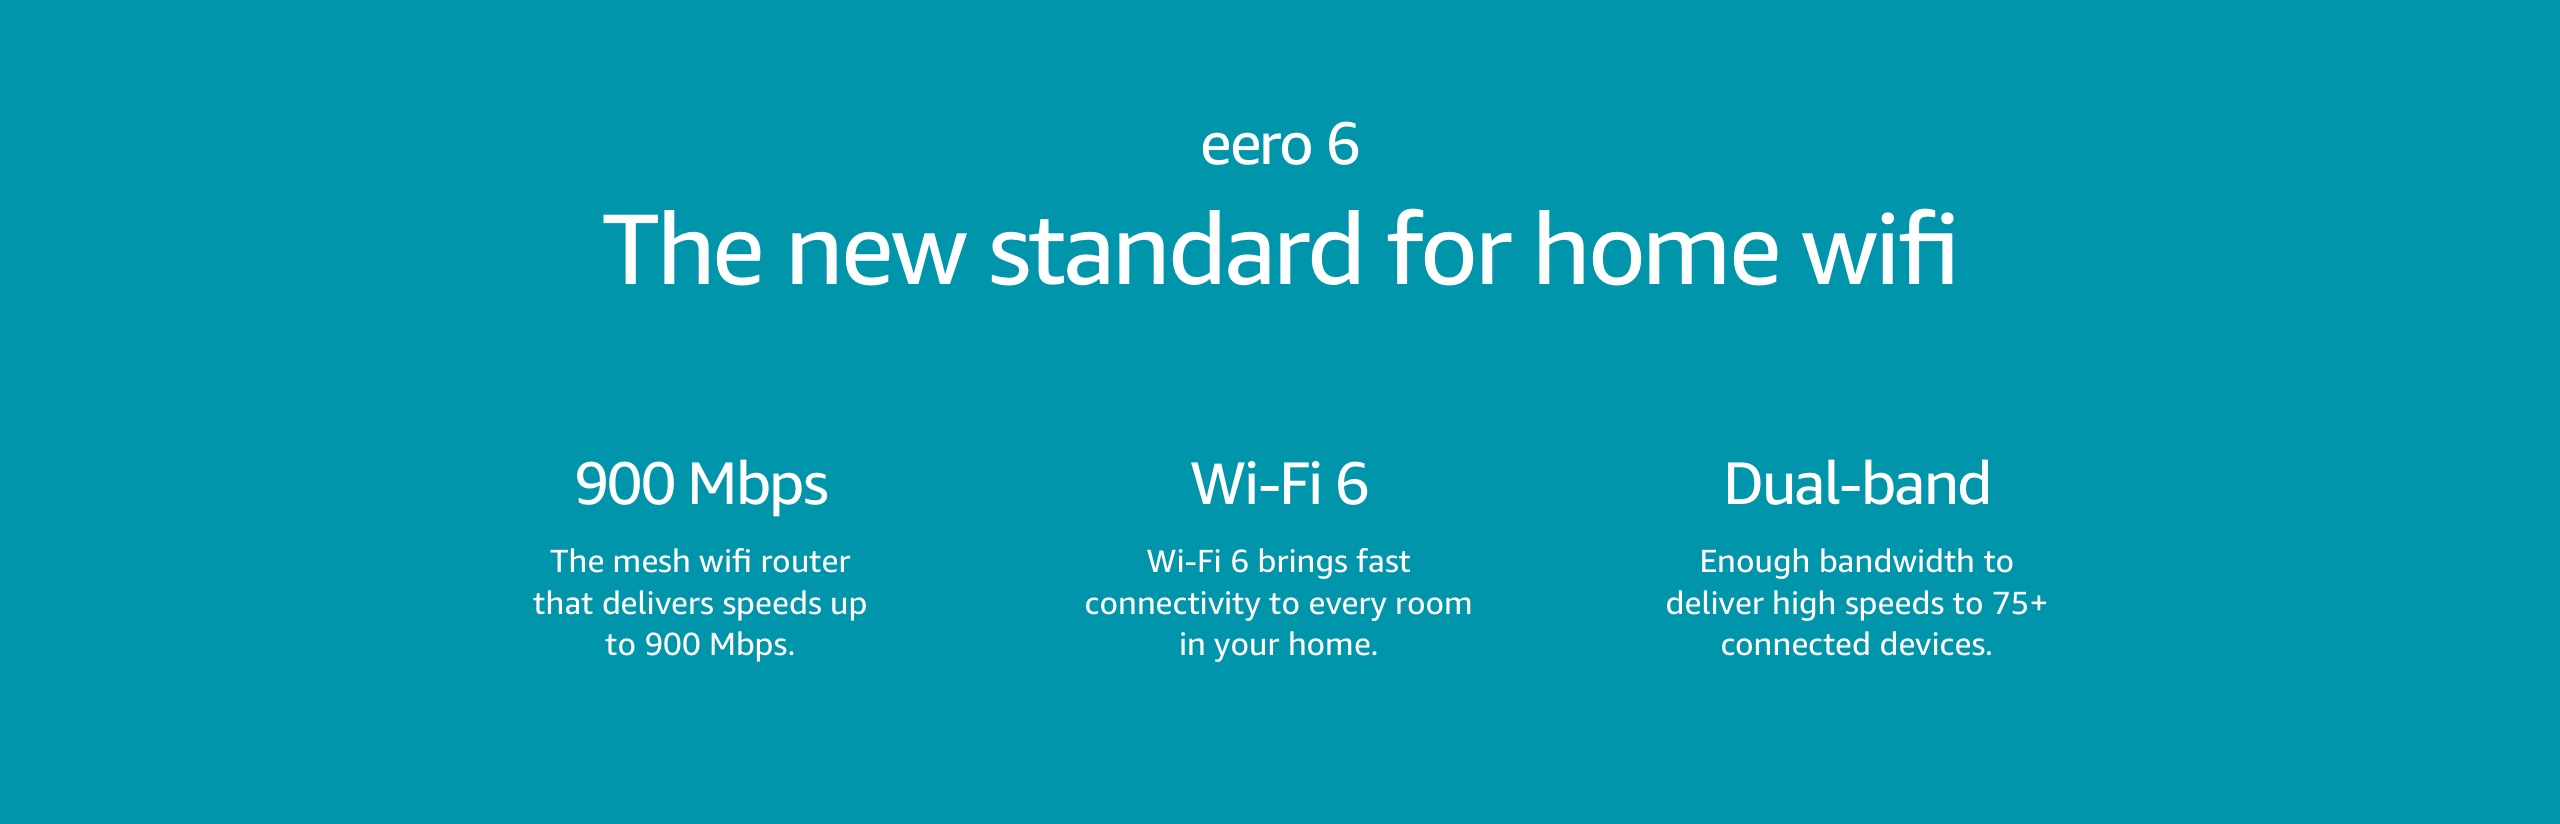 The new standard for home wifi